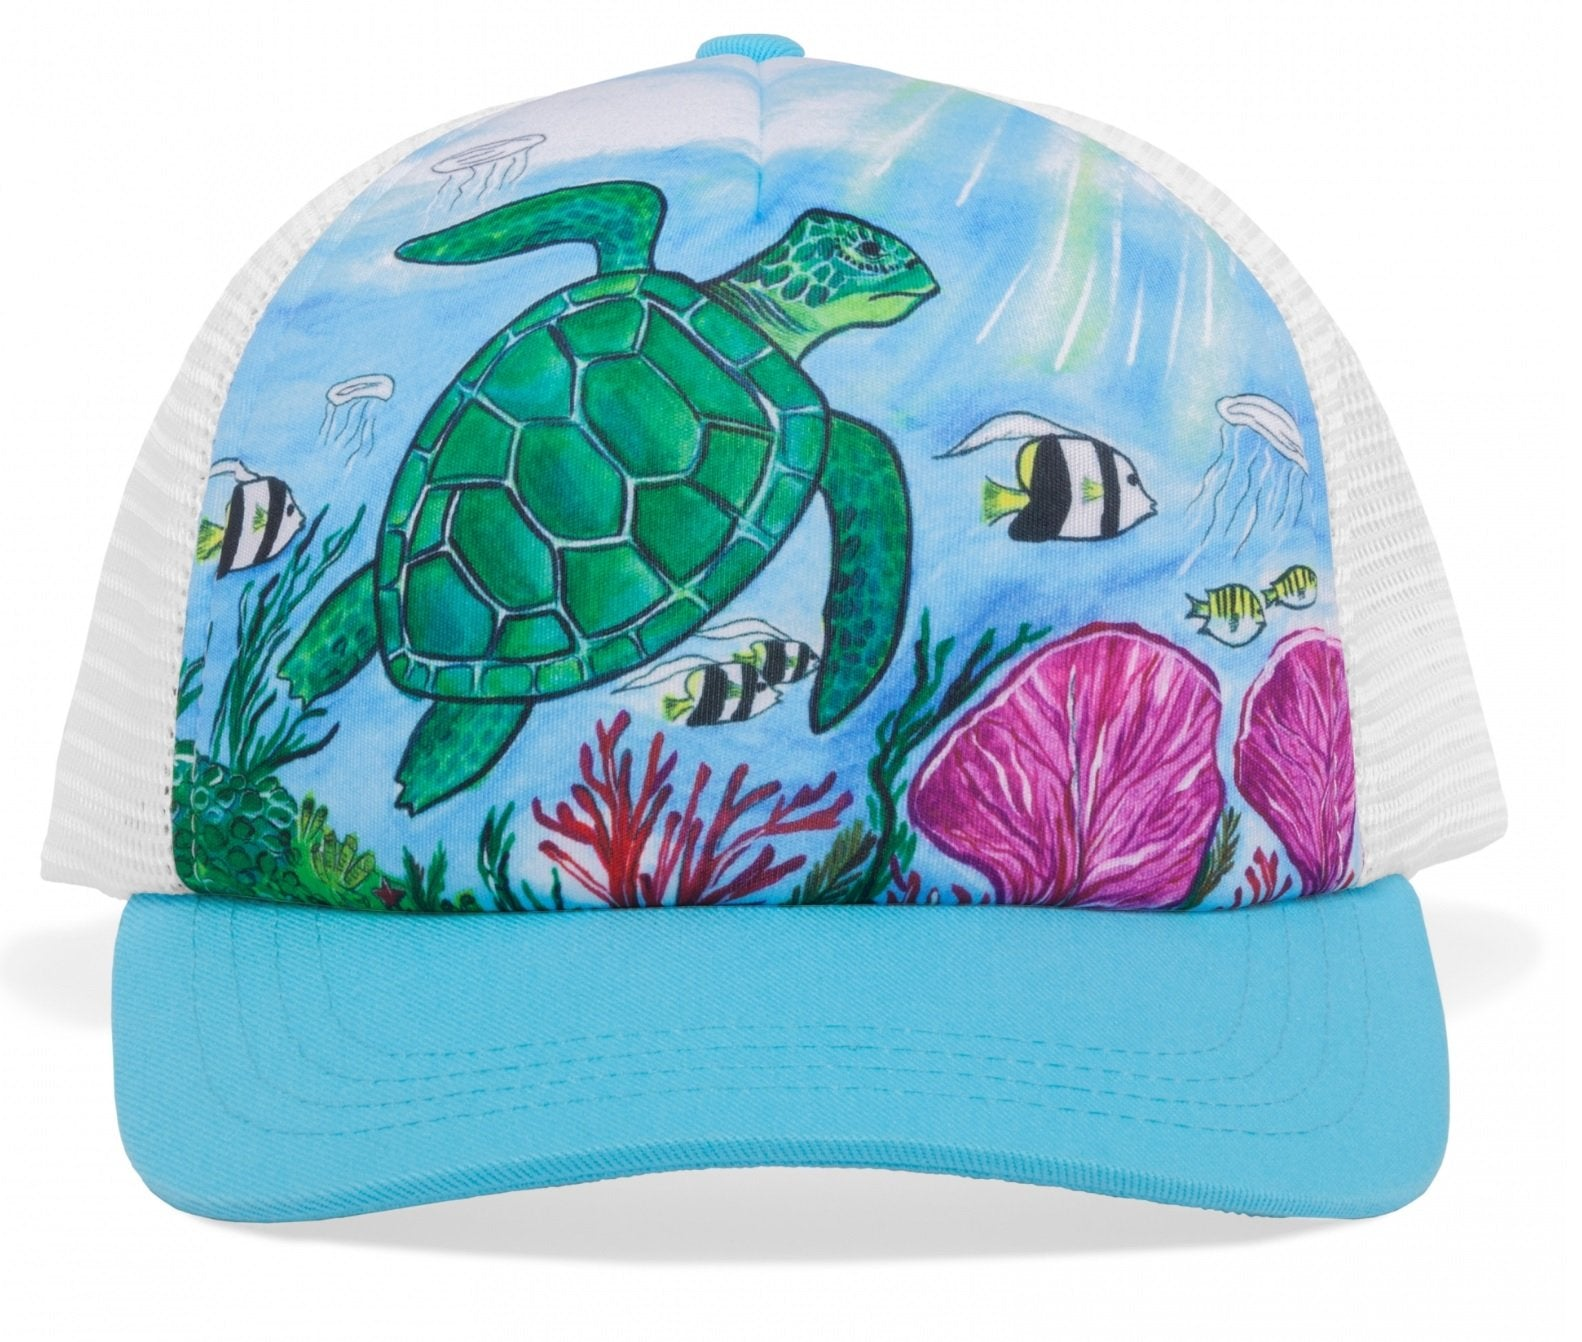 Sunday Afternoons Kids' Cooling Trucker Hat - Sea Turtles